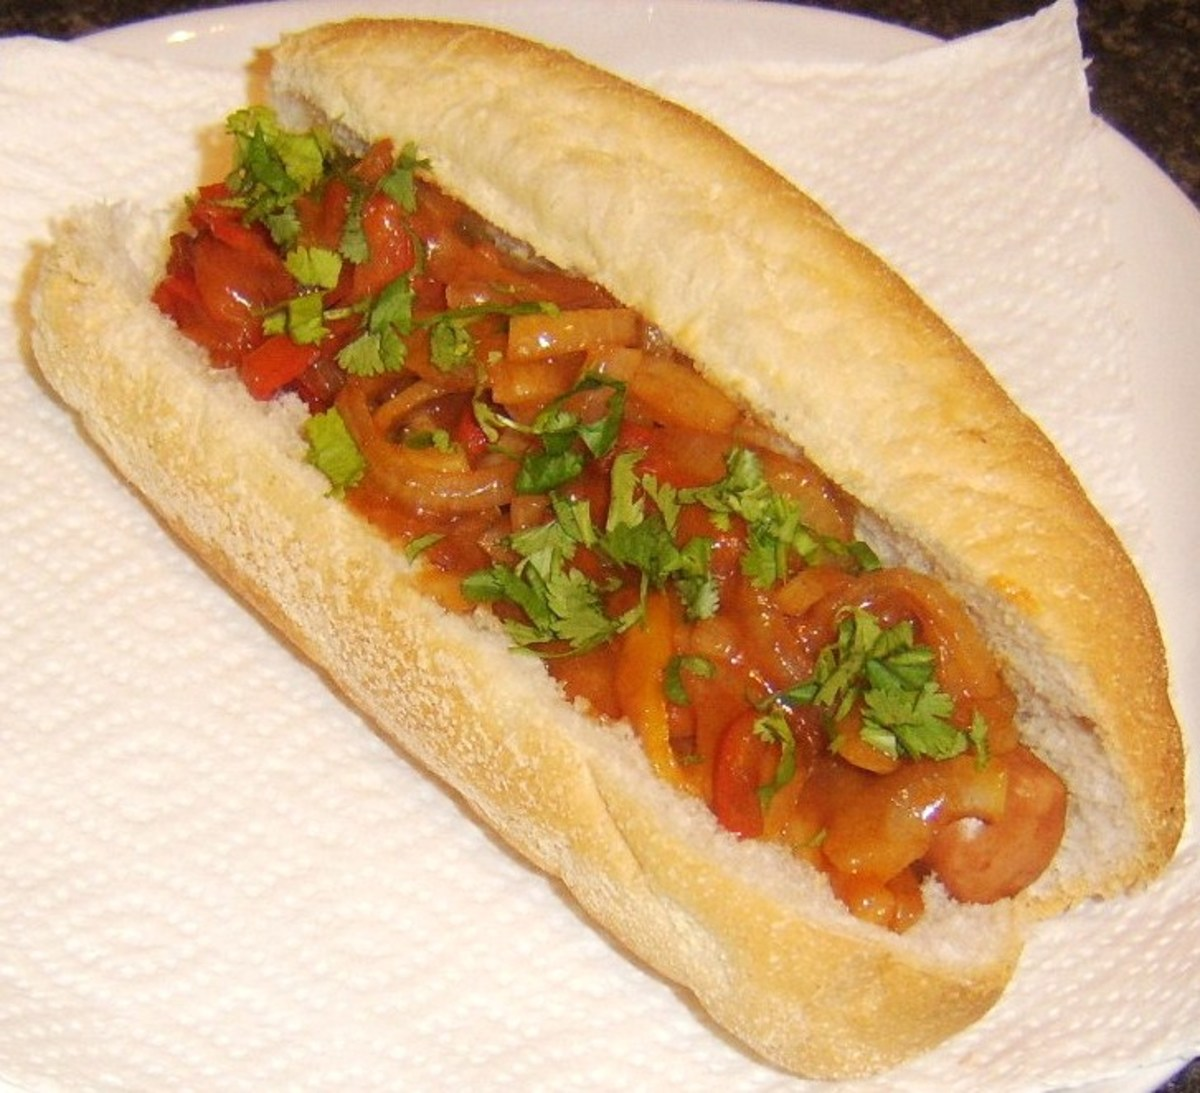 Bell peppers and onion in sweet and sour sauce topped dog